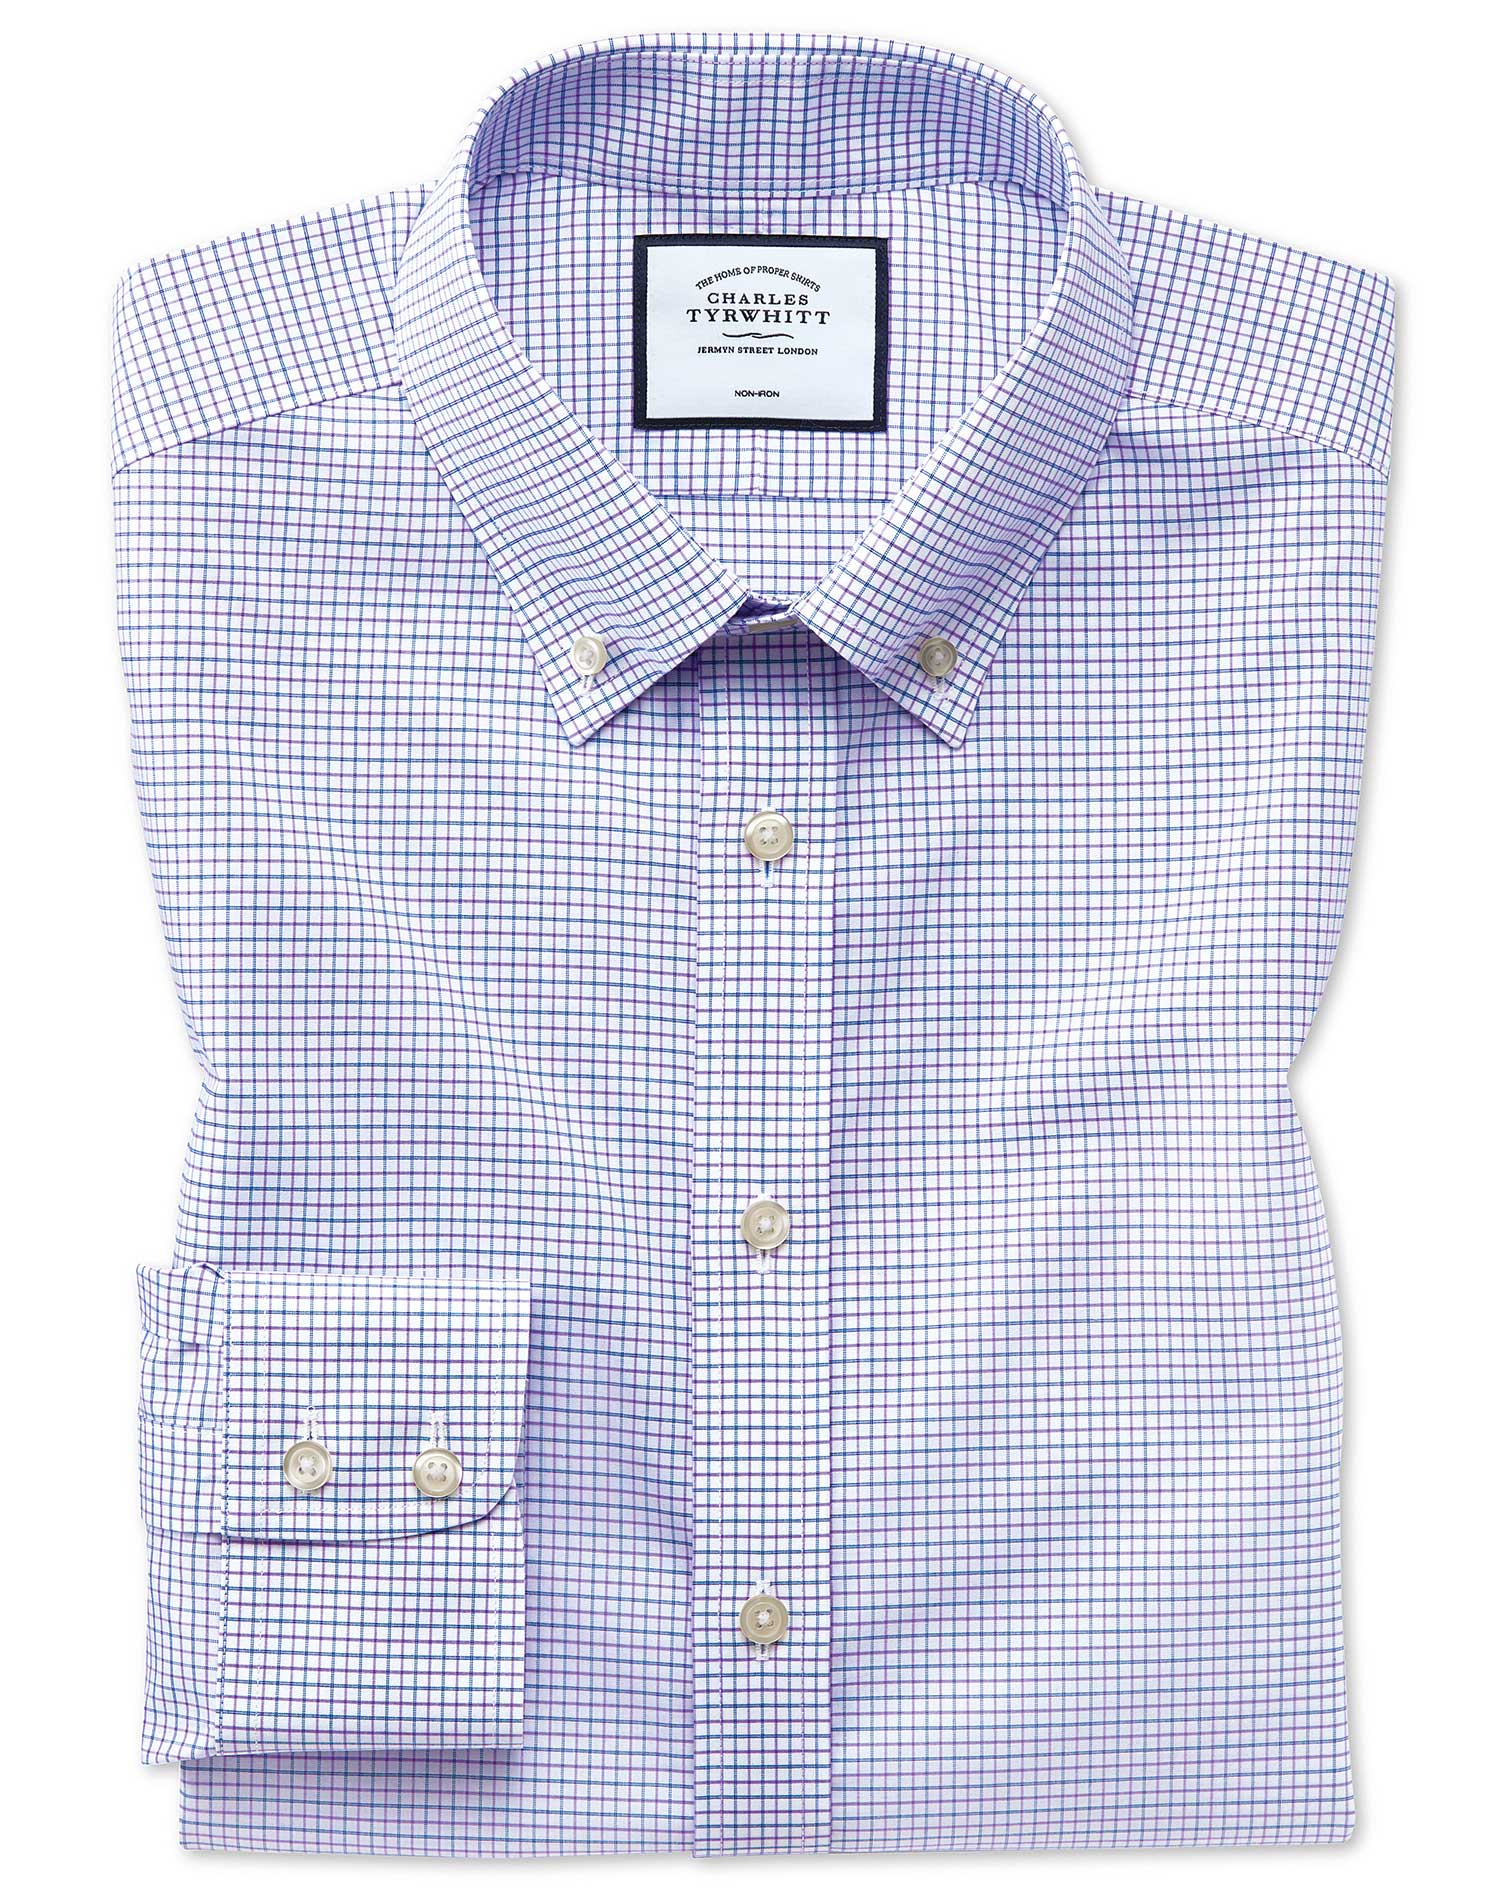 Classic Fit Non-Iron Button-Down Lilac and Blue Cotton Formal Shirt Single Cuff Size 16.5/33 by Char